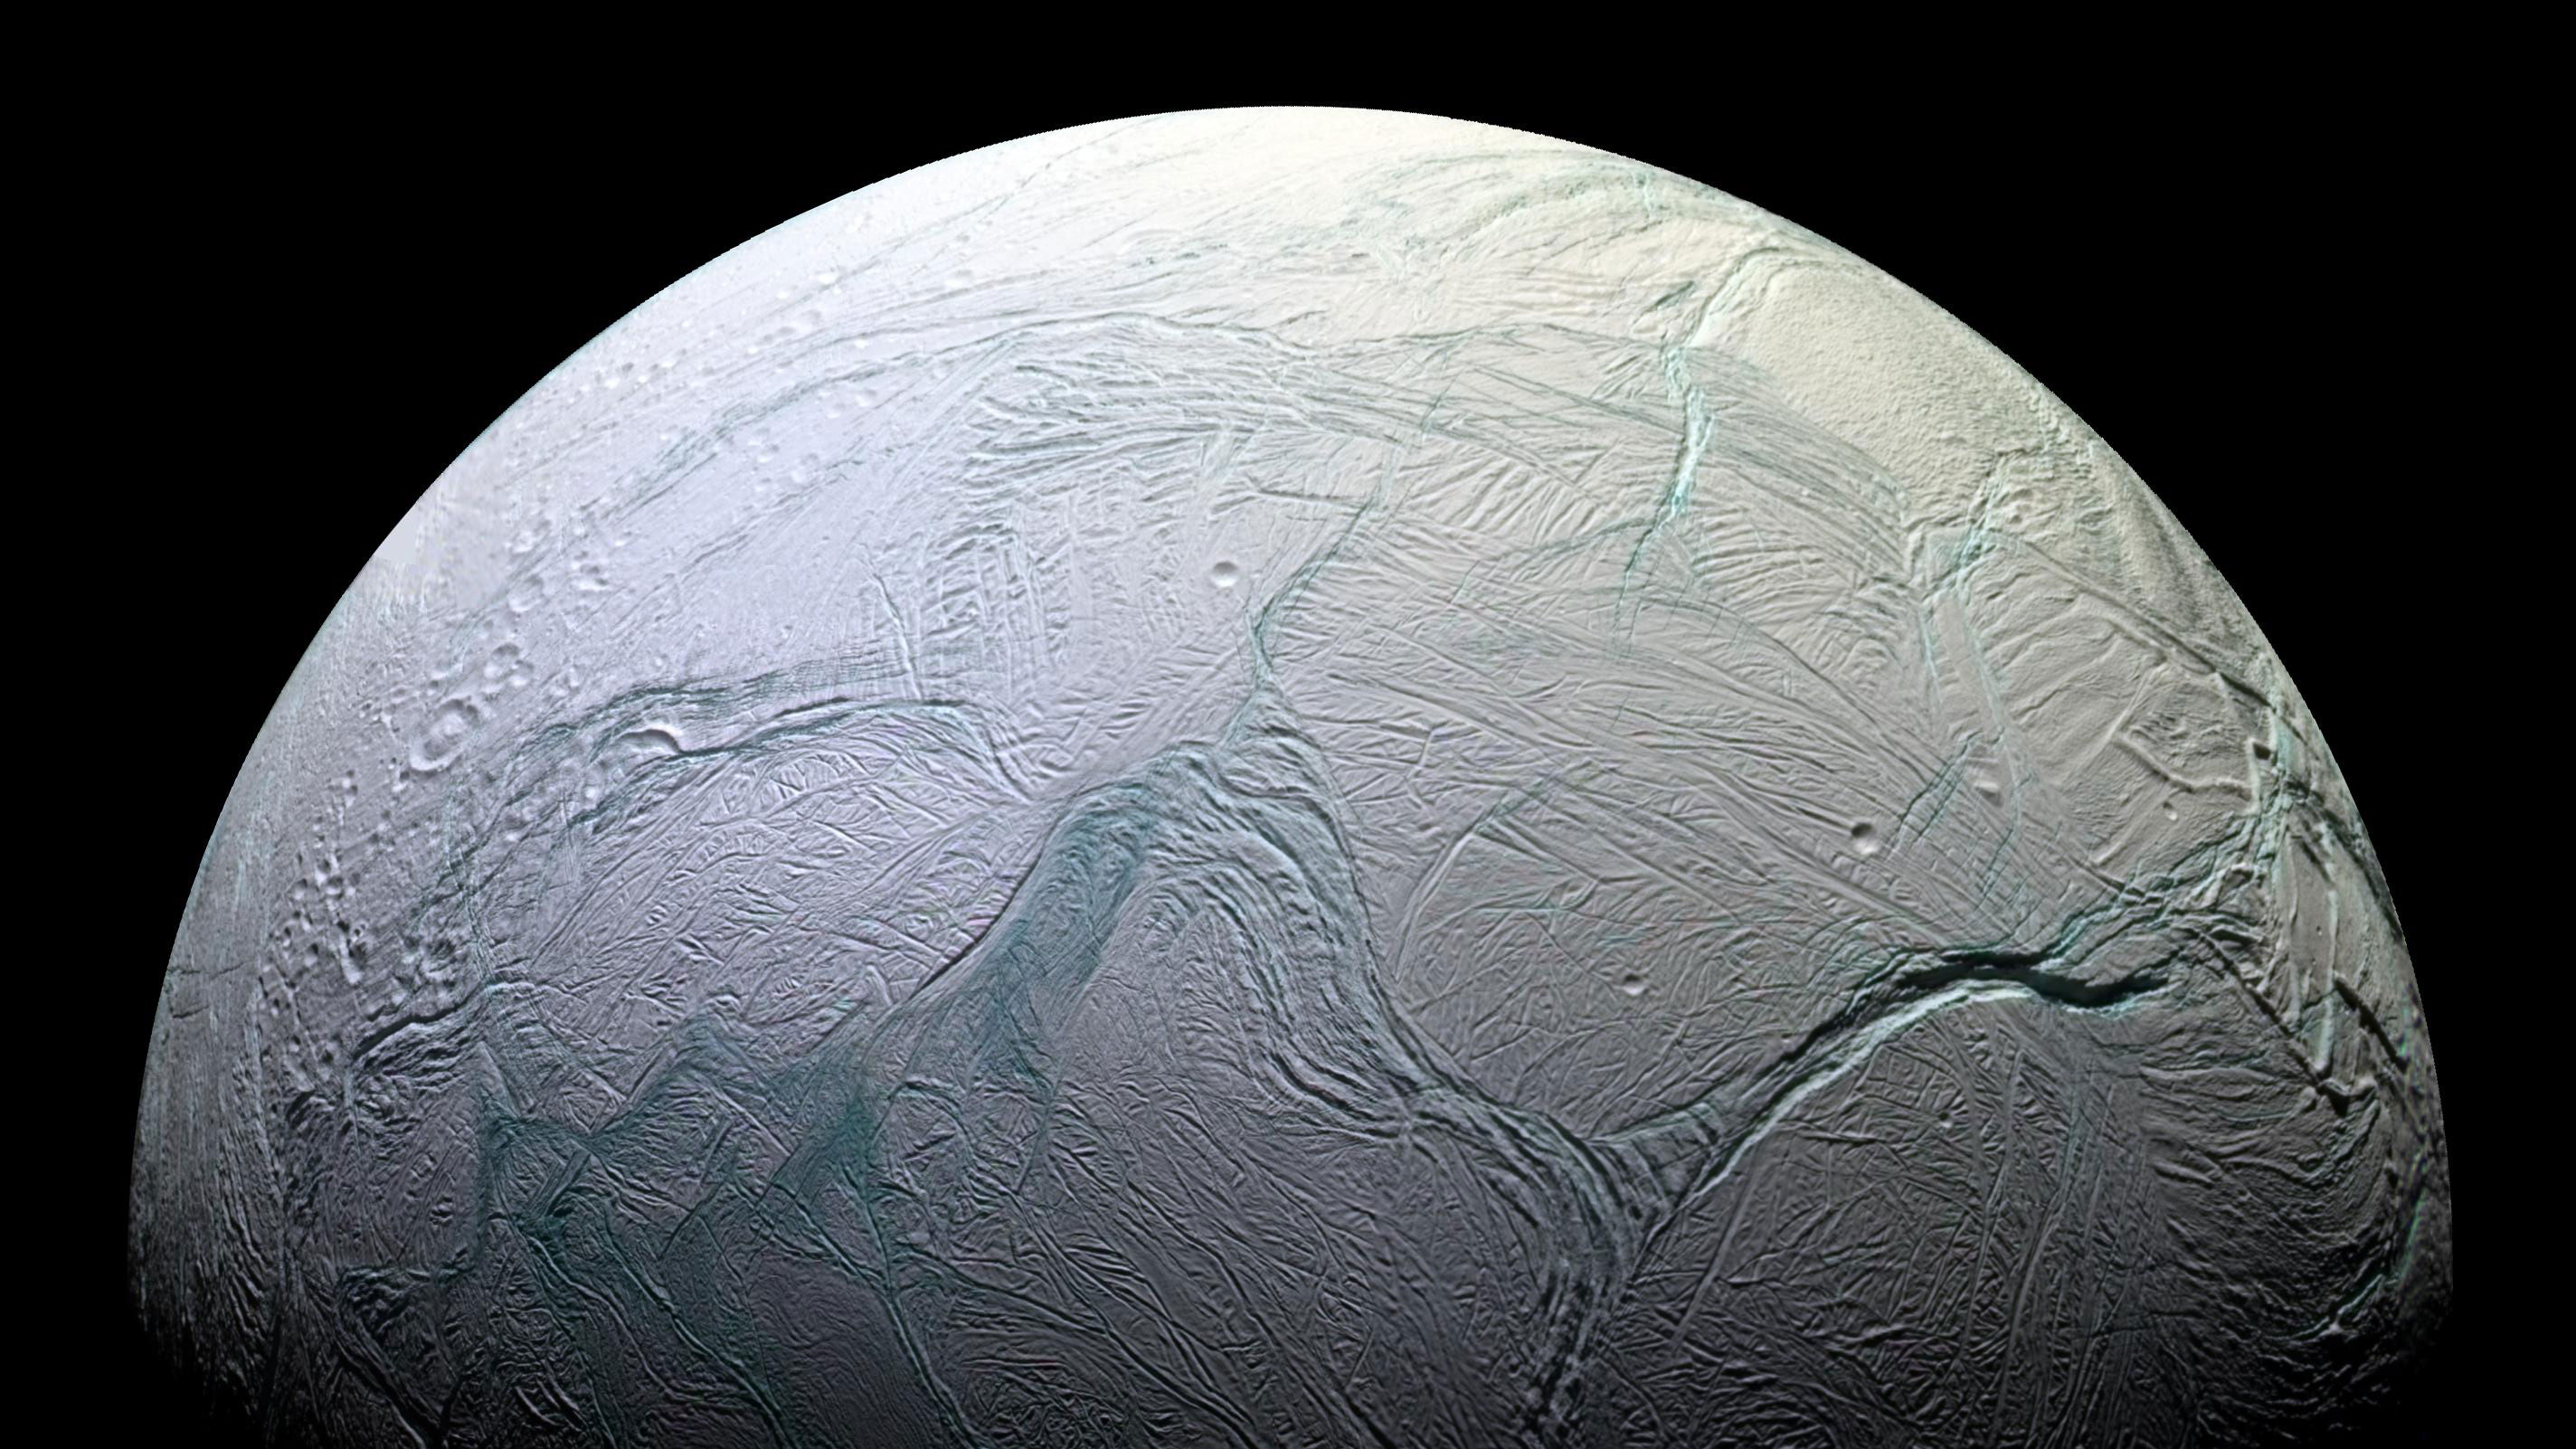 Saturn's moon, Enceladus. Credit: NASA/JPL/Space Science Institute